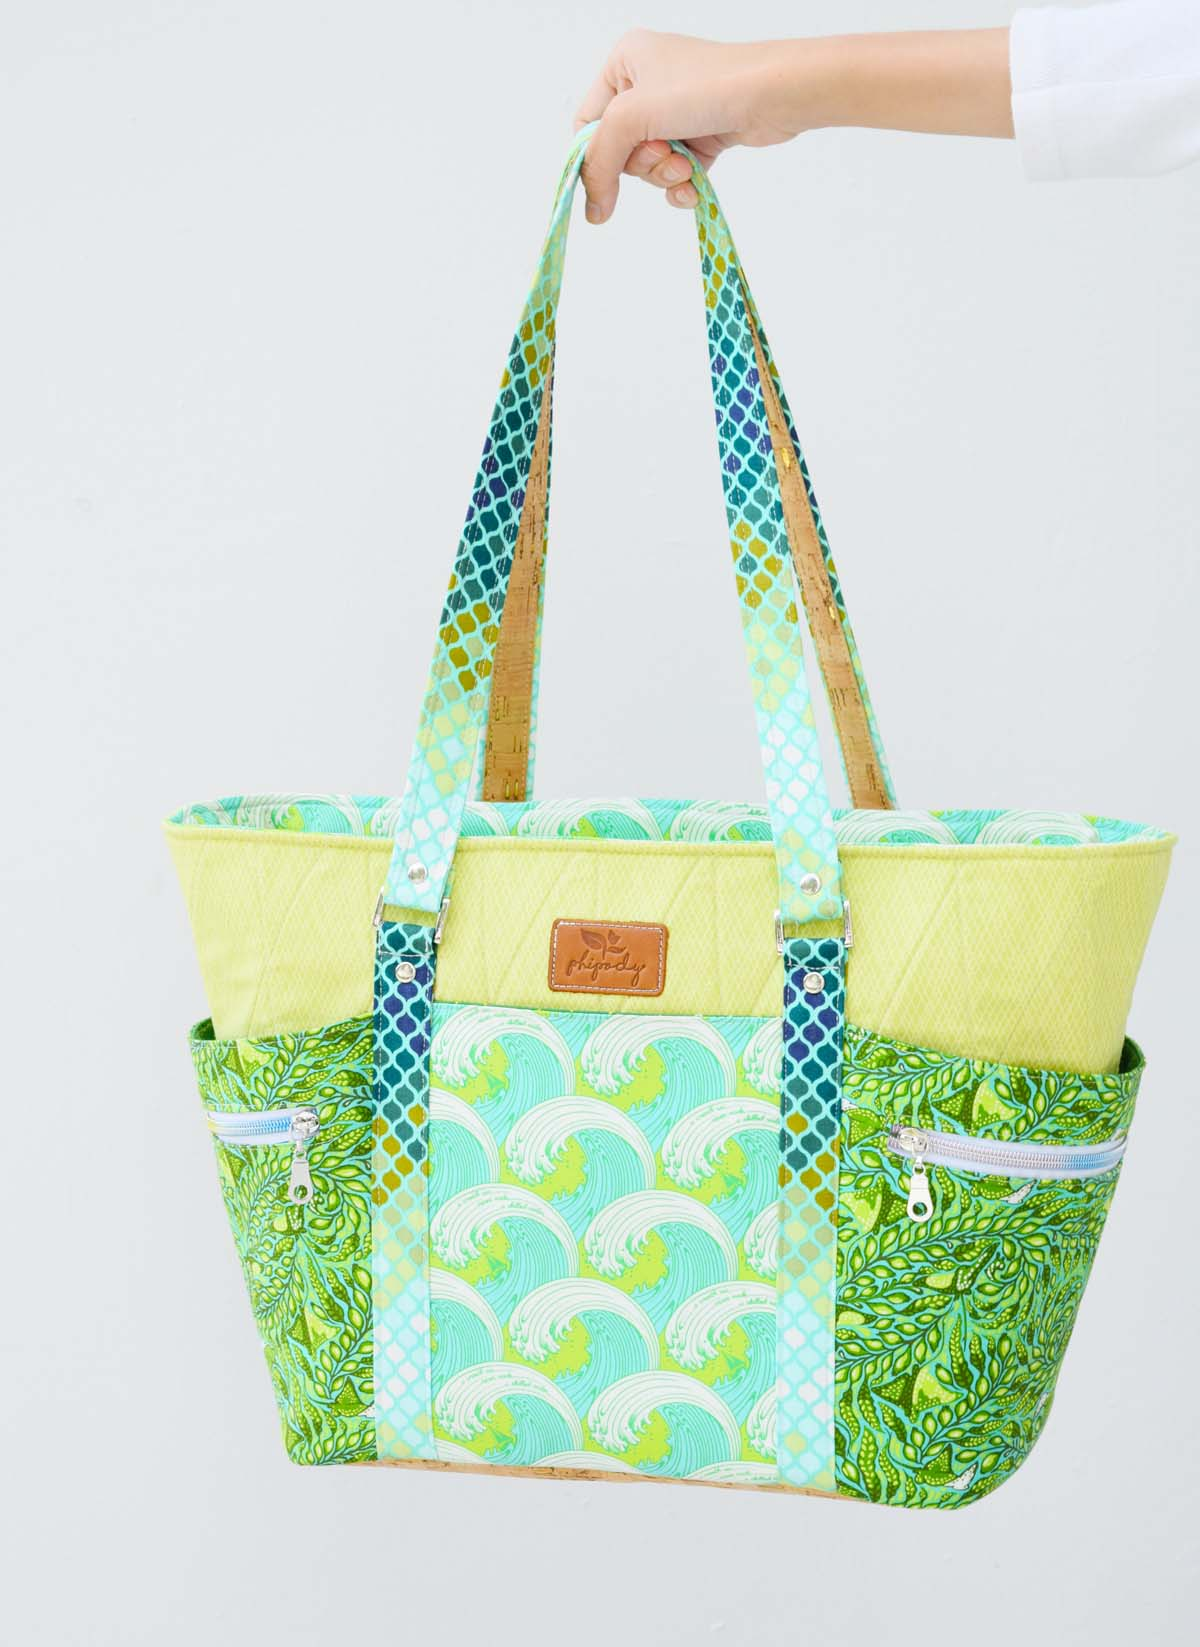 knitting bag carry-all Tote bag Blazing Sun carry-on bag shopping tote hand-sewn tote baby bag